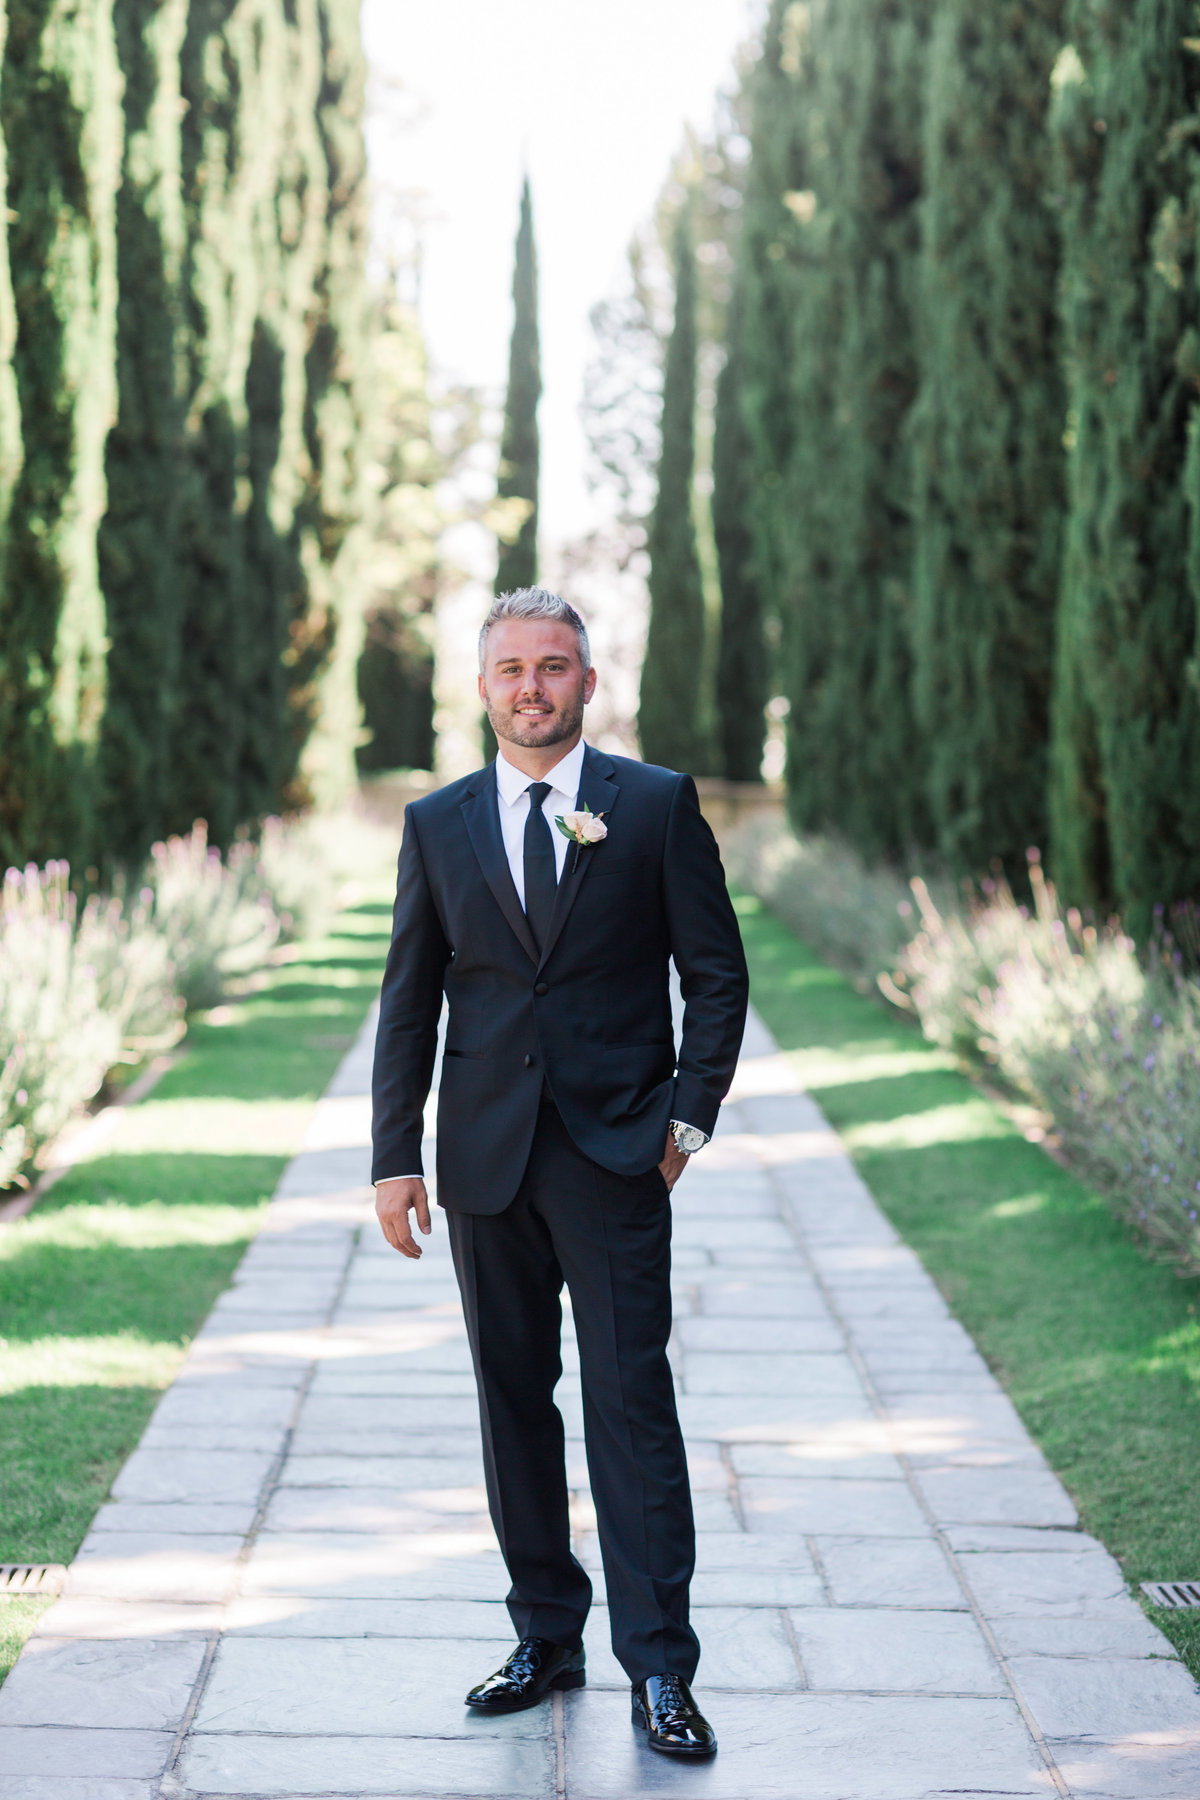 Greystone_Mansion_Intimate_Black_Tie_Wedding_Valorie_Darling_Photography - 74 of 206